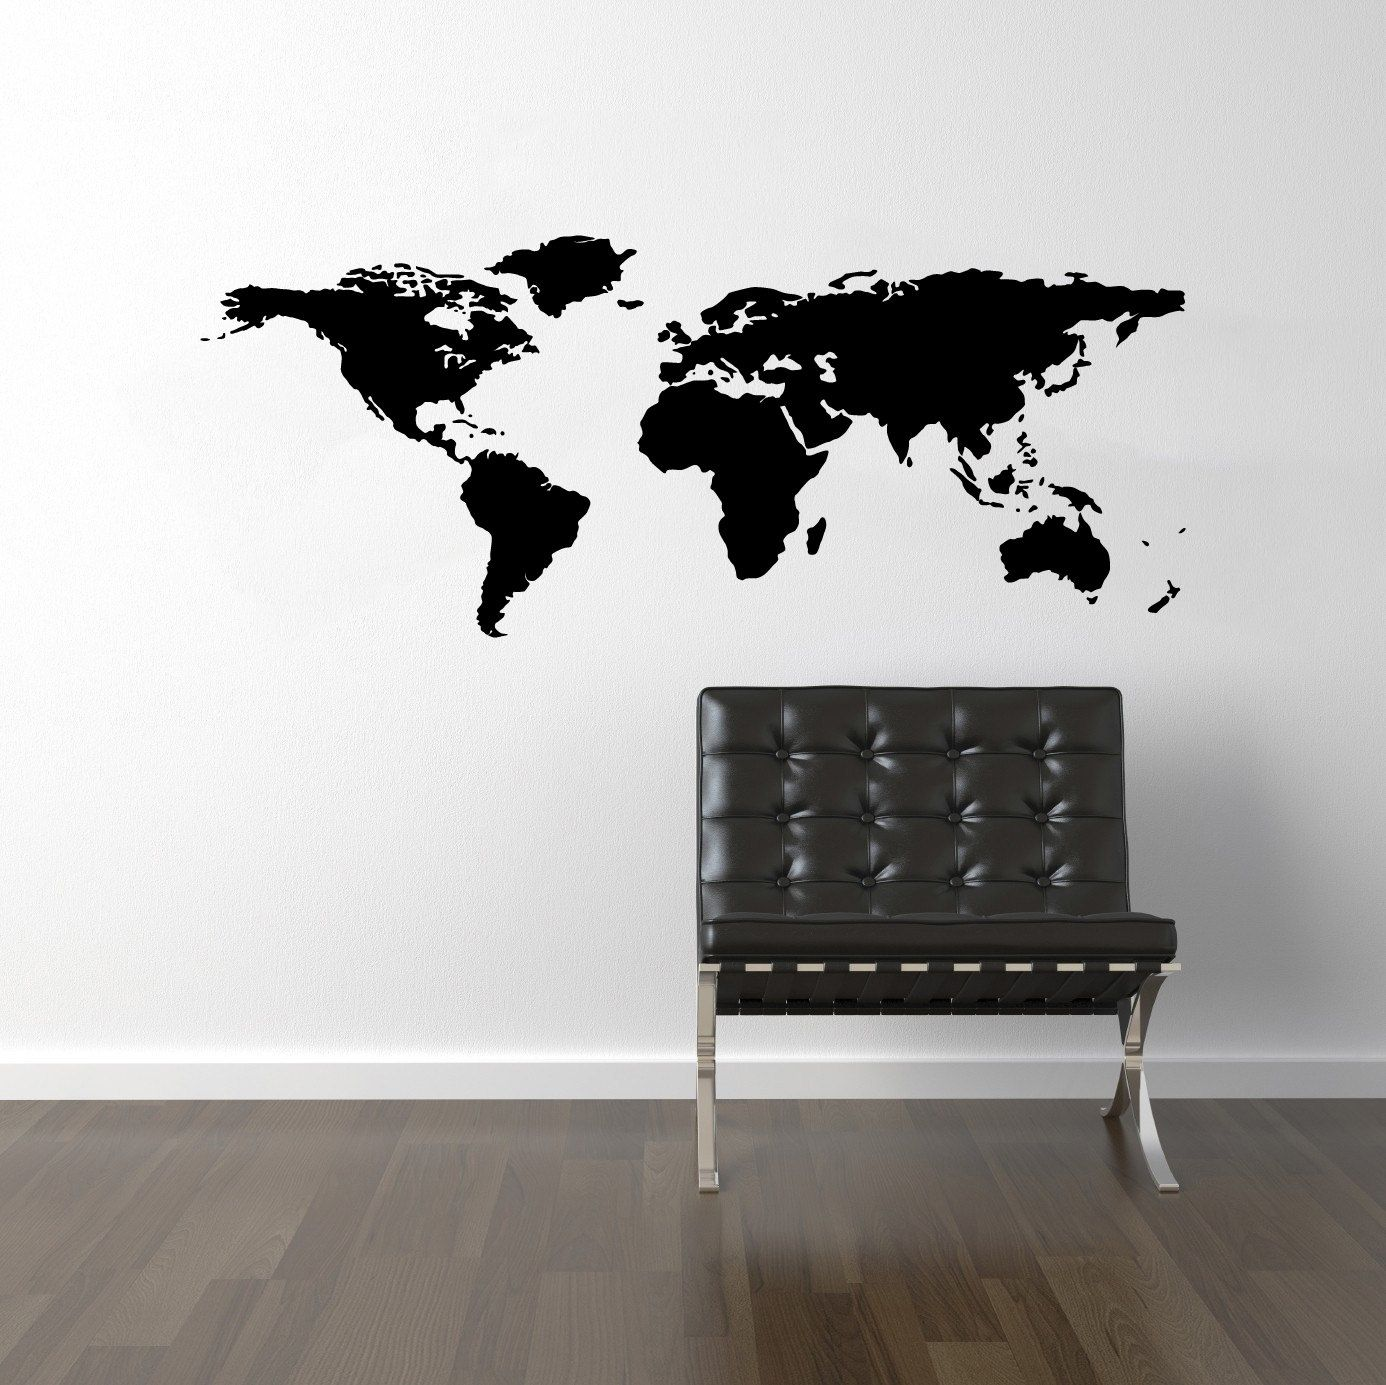 World map wall decal travel wall decor map wall sticker wal world map wall decal travel wall decor map wall sticker wal a127 gumiabroncs Images